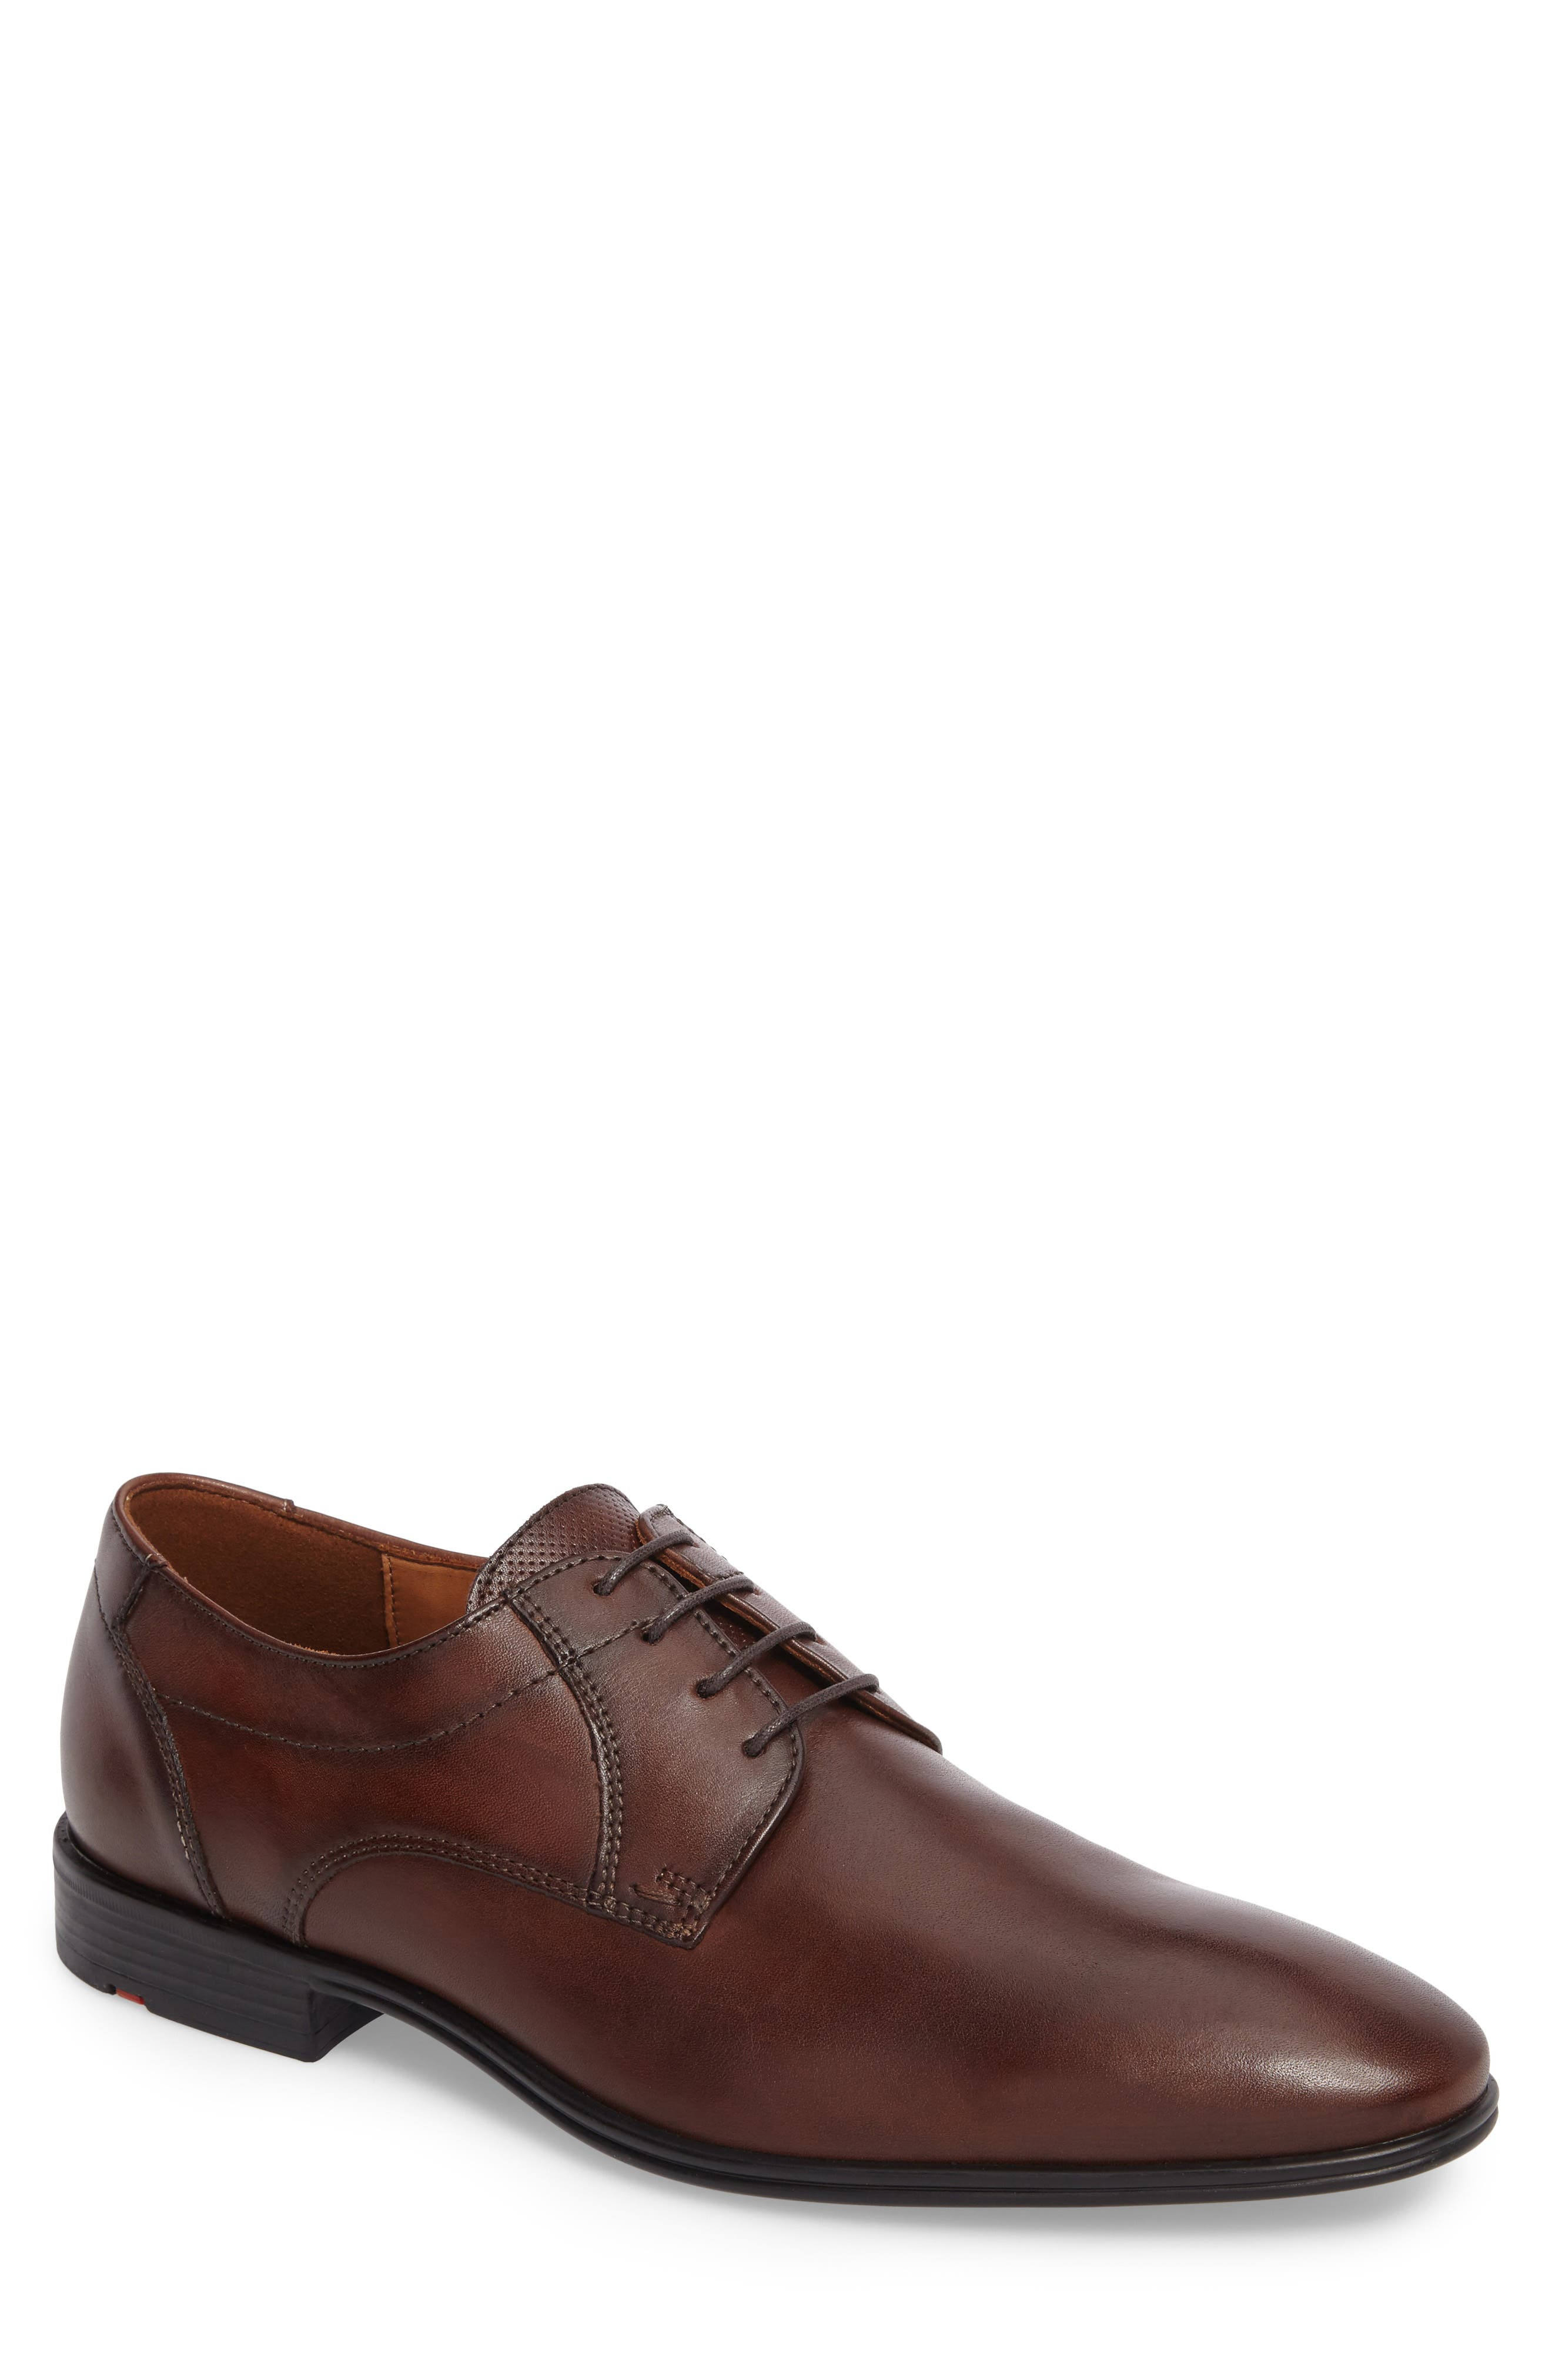 Osmond Plain Toe Derby,                             Main thumbnail 1, color,                             T.D.Moro Leather